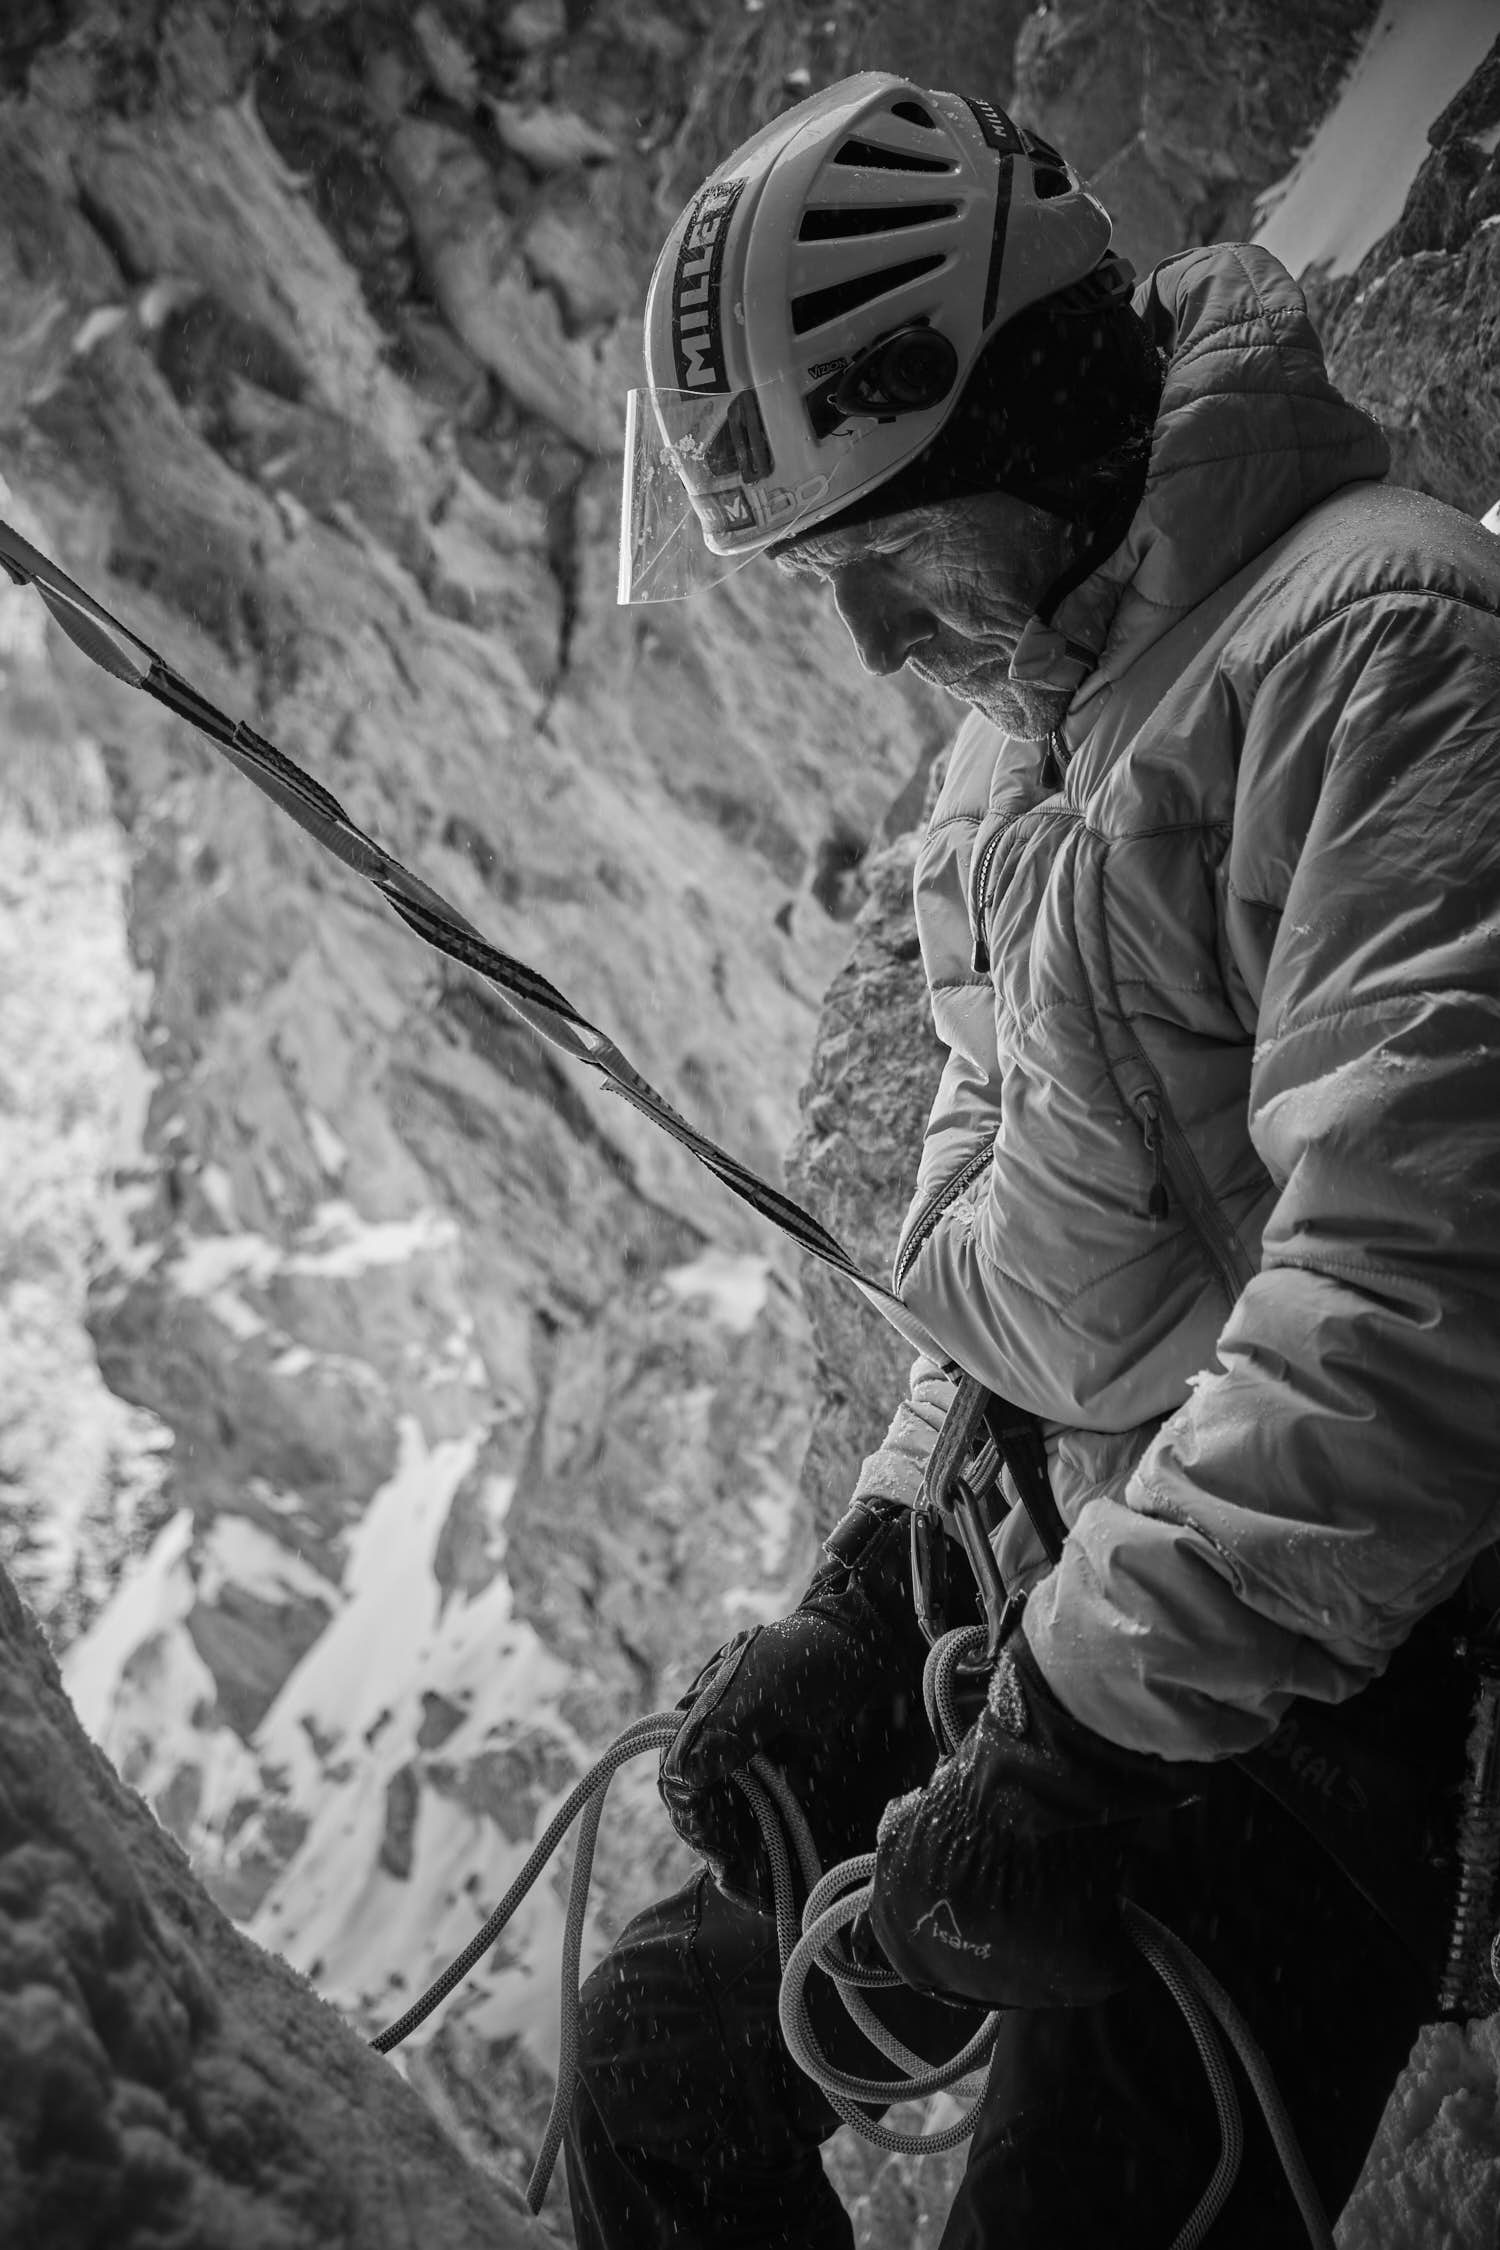 A thoughtful old man belaying. Black and white photography.